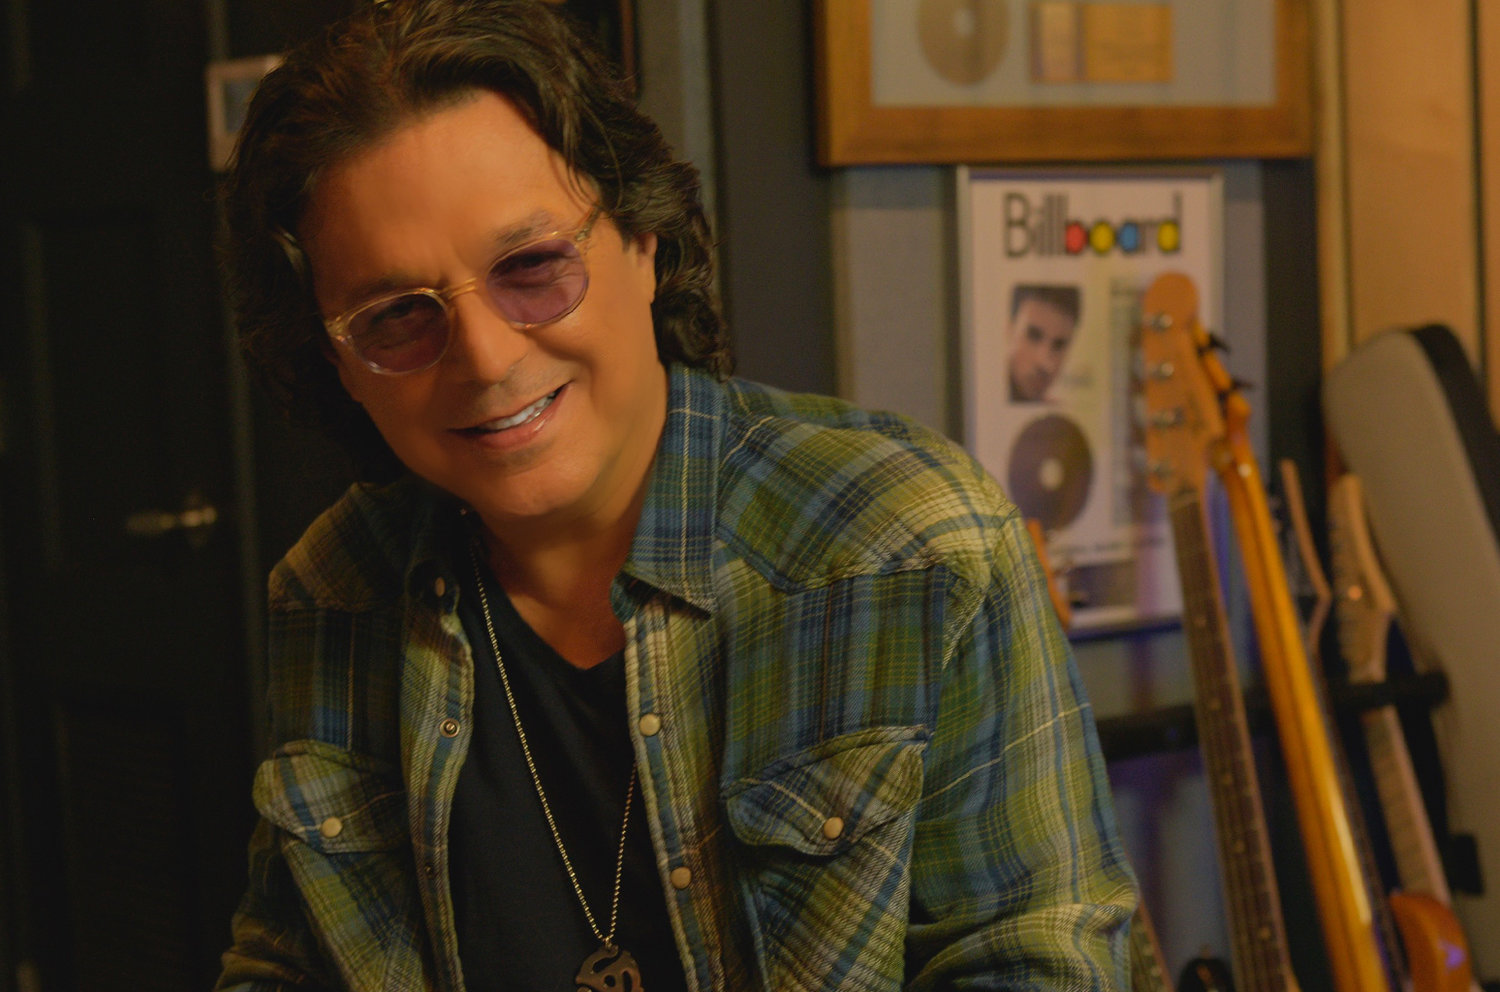 Grammy-winning songwriter and music producer Rudy Perez. Photo courtesy of Rudy Perez.